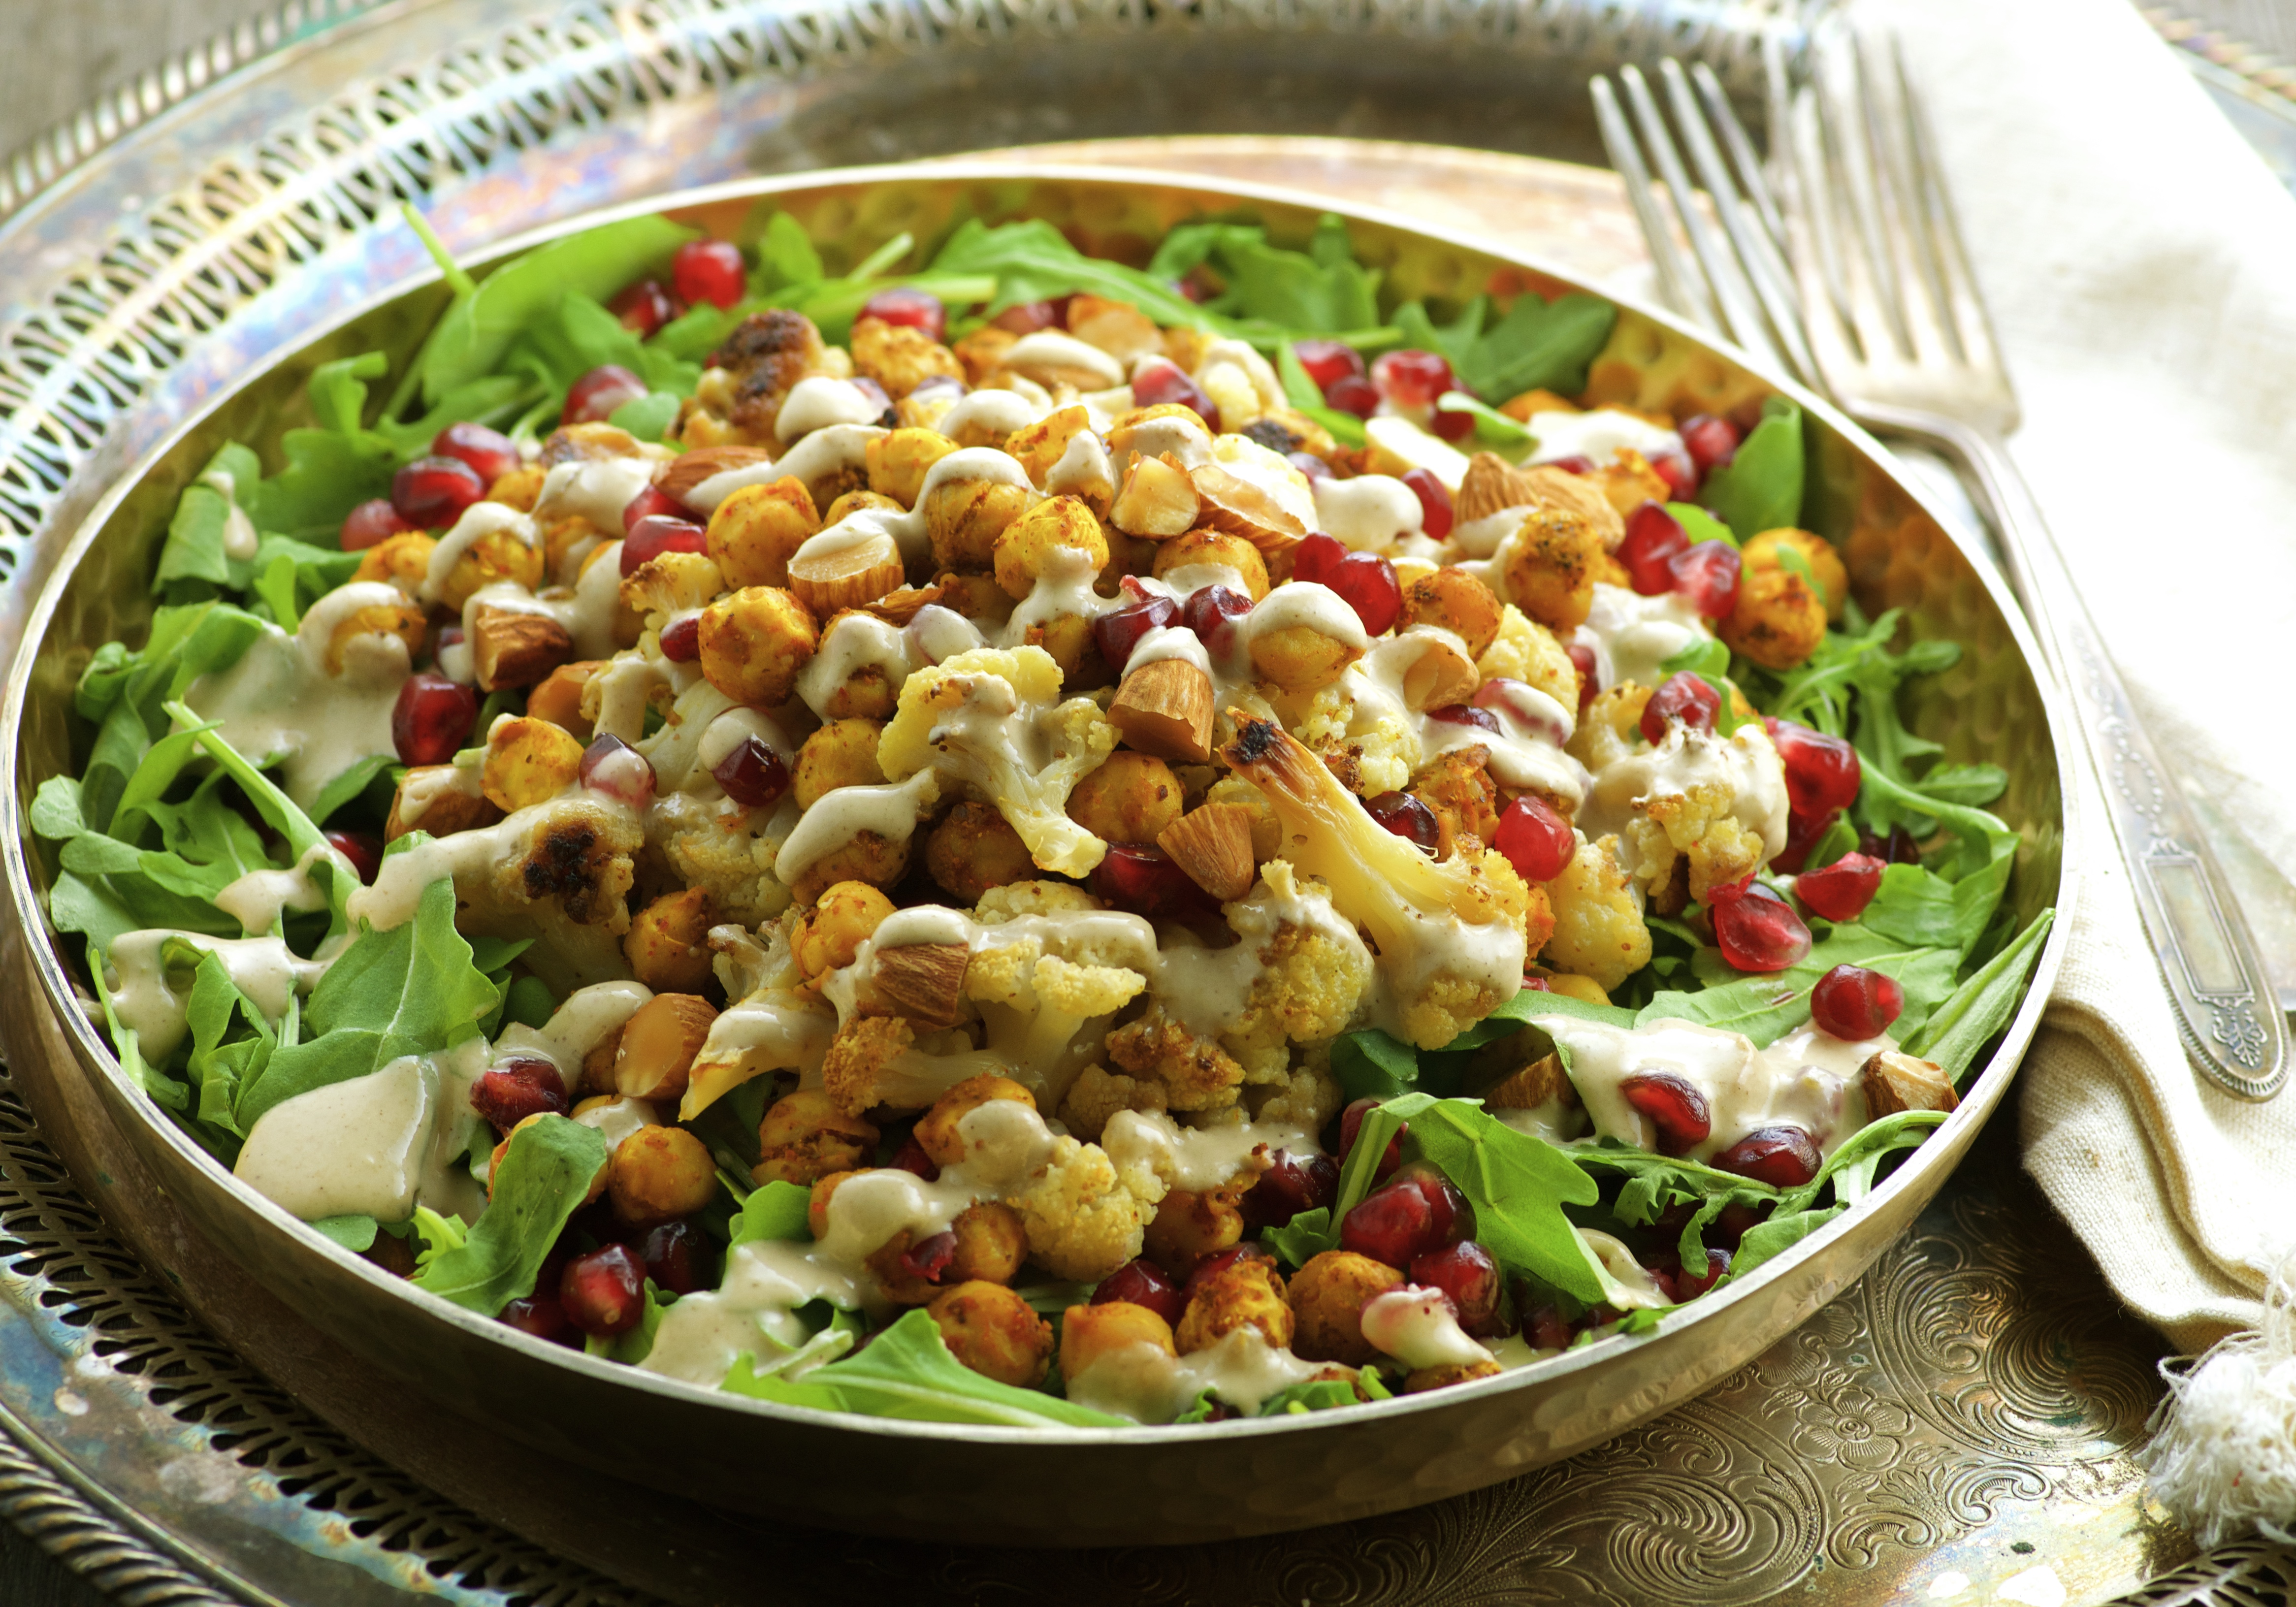 Roasted Cauliflower & Chickpea Salad - May I Have That Recipe